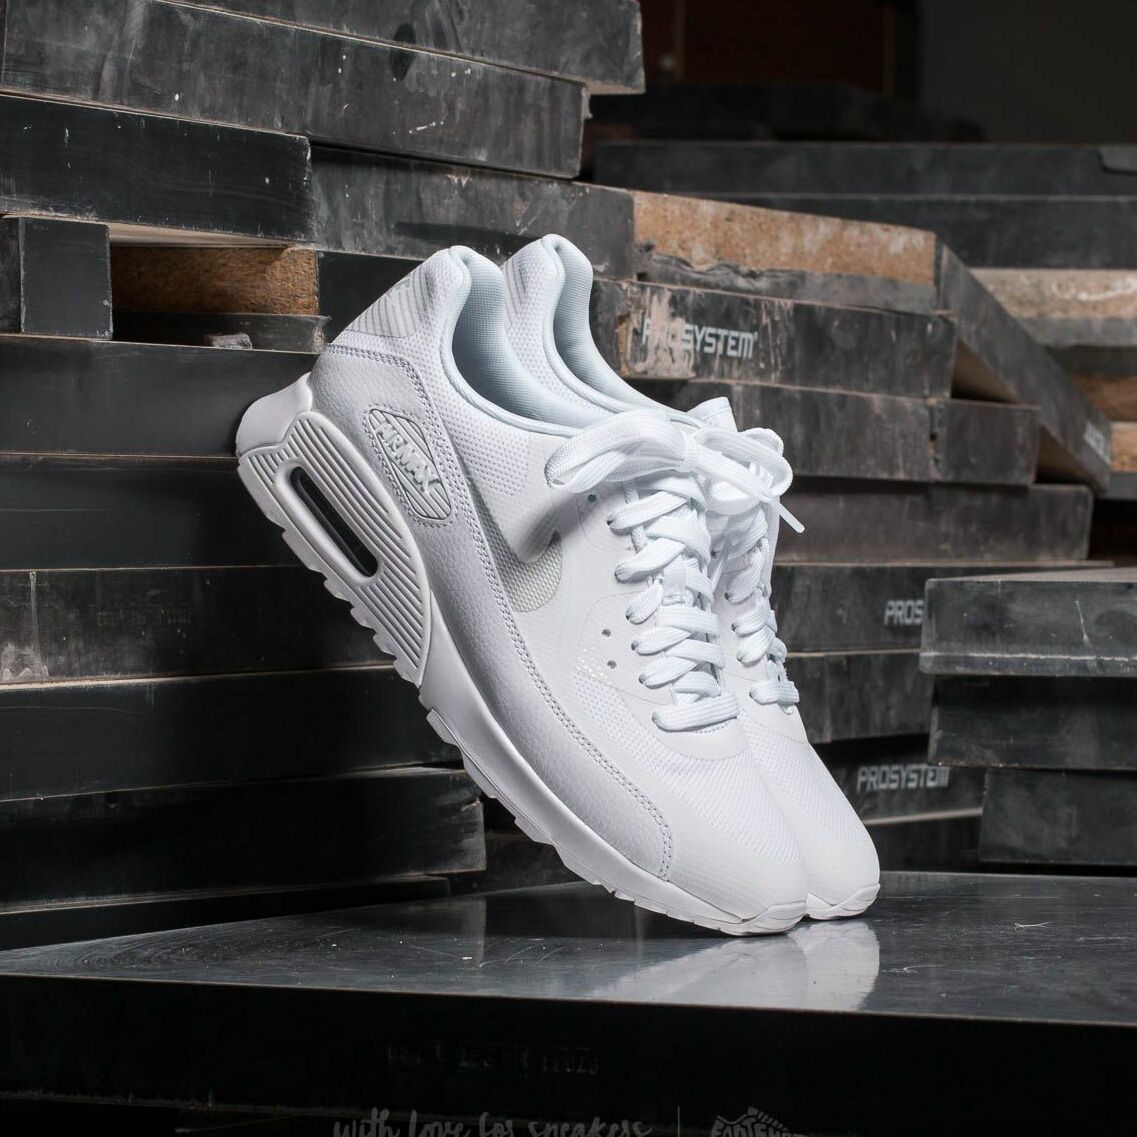 Nike Wmns Air Max 90 Ultra 2.0 White/ Metallic Platinum-White 881106-101